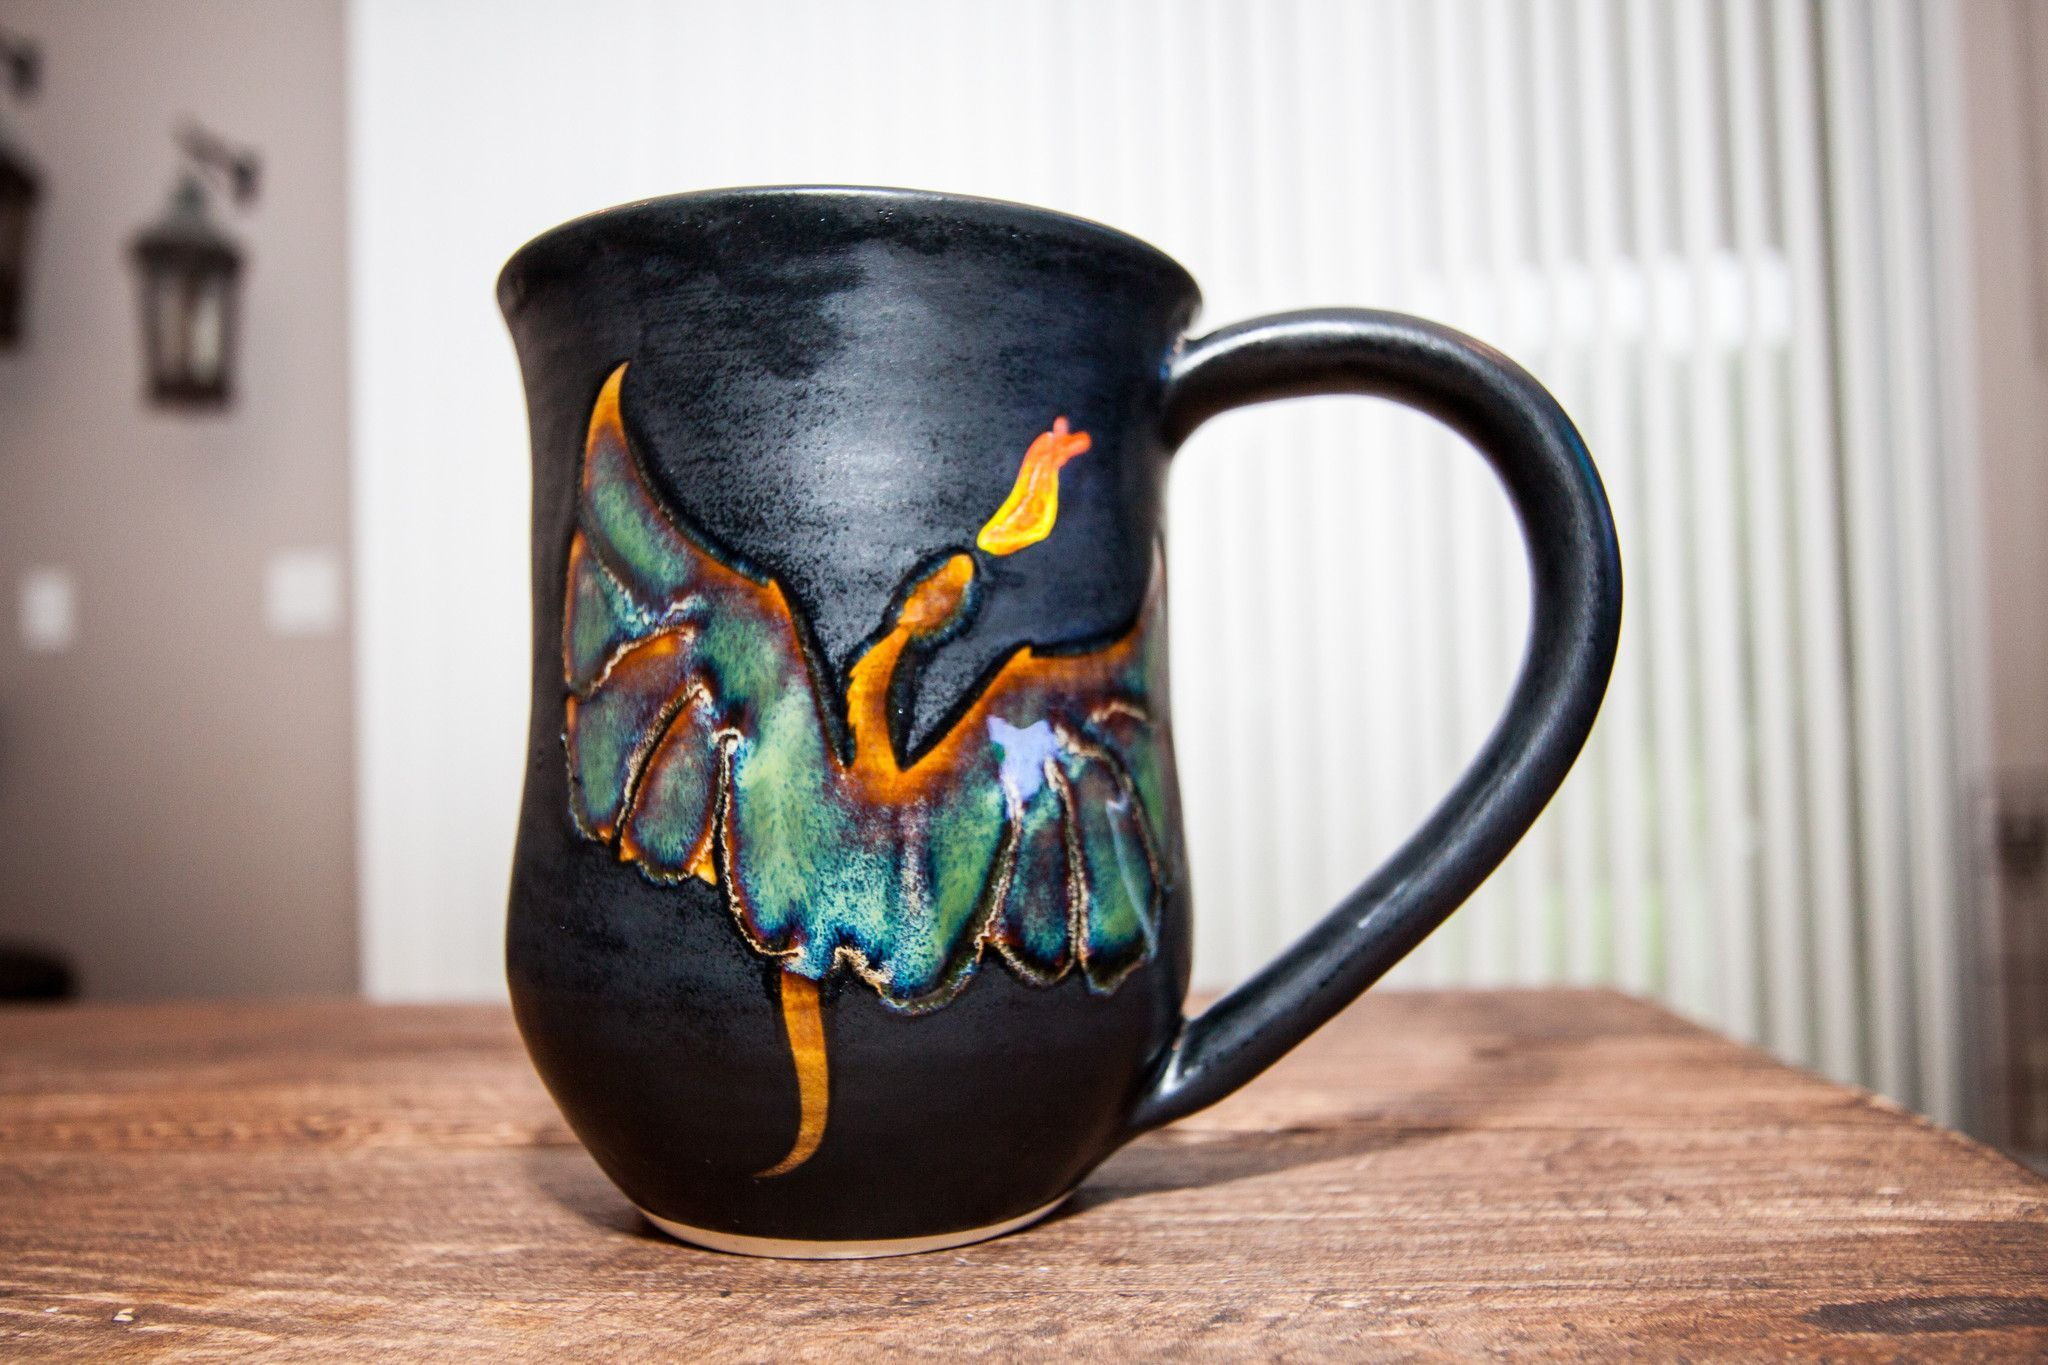 Riveting Dragon Handmade Coffee Game Thrones Inspired Oversized Mug Dragon Handmade Coffee Game Thrones Inspired Oversized Mug Komodo Dragon Coffee K Cups Dragon Ball Z Coffee Cups furniture Dragon Coffee Cups